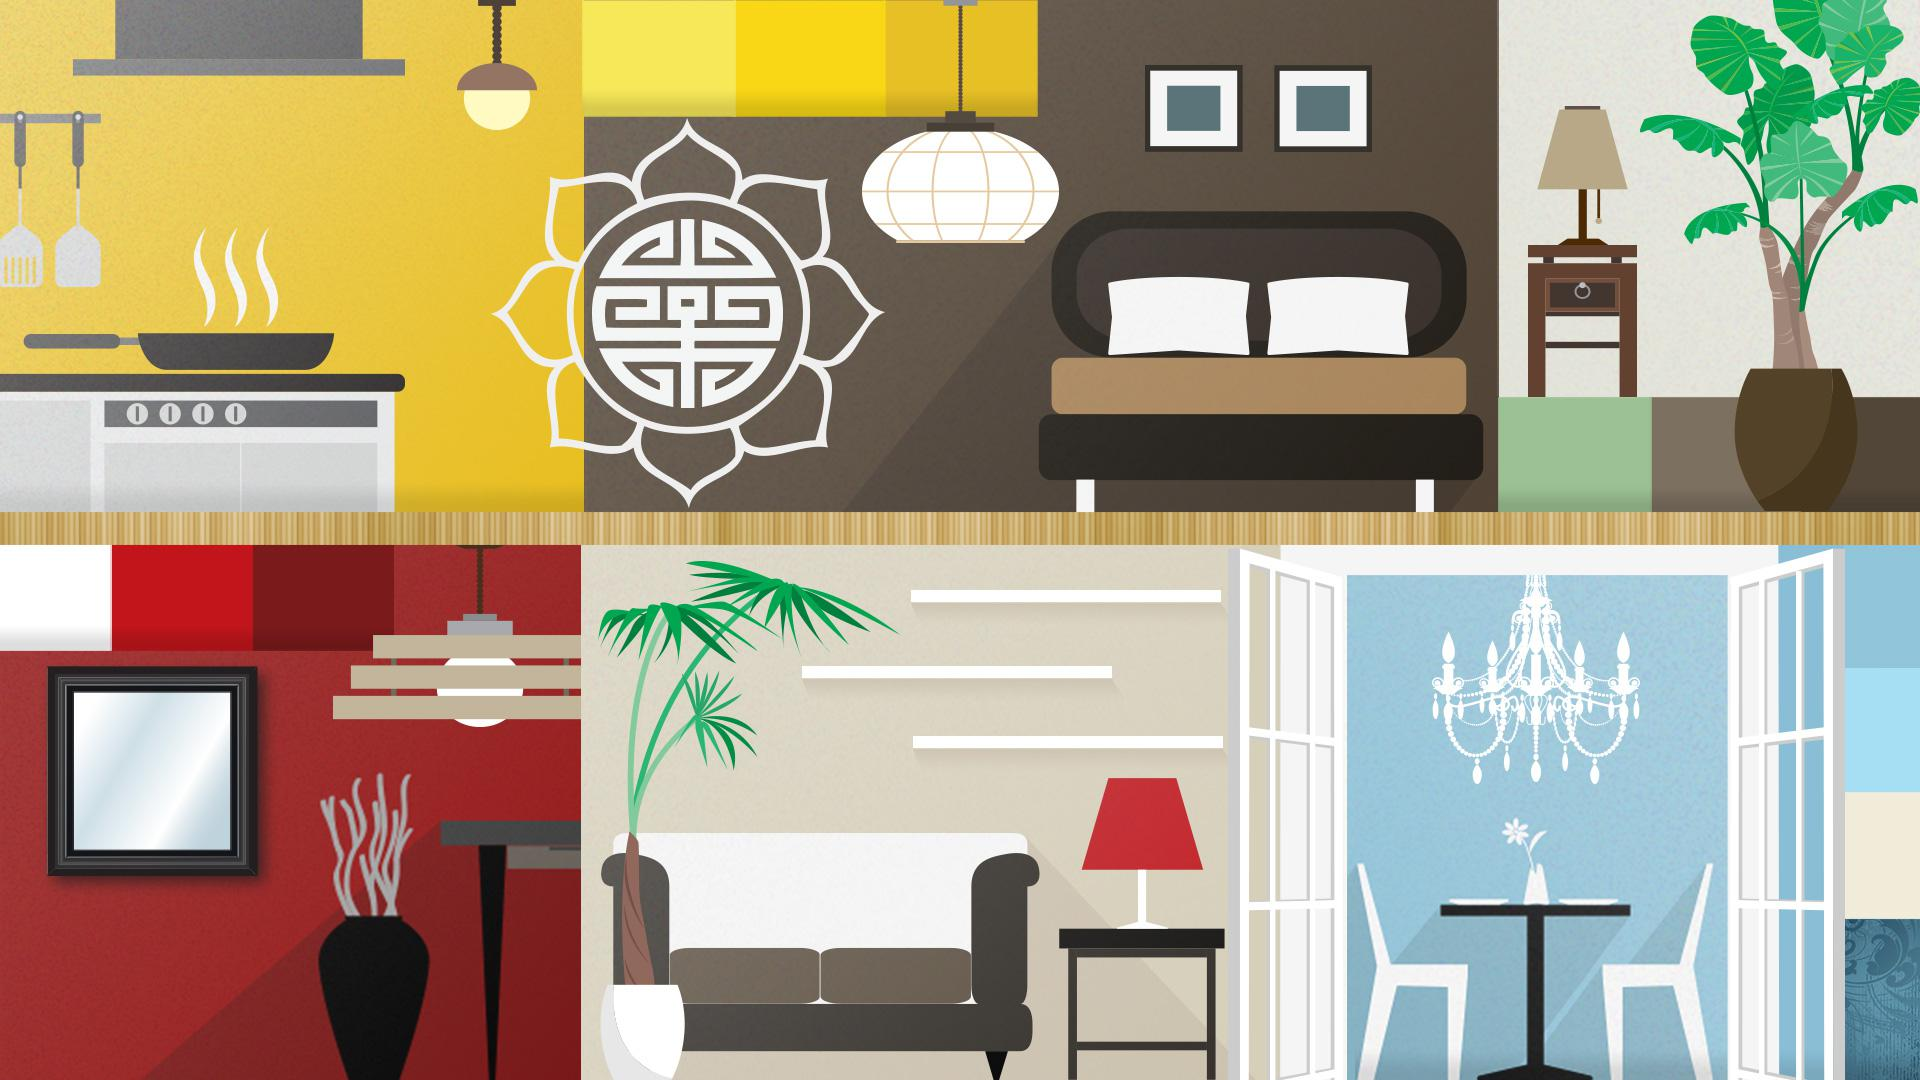 how to feng shui your home a room by room guide \u2013 sheknowshow to feng shui your home a room by room guide